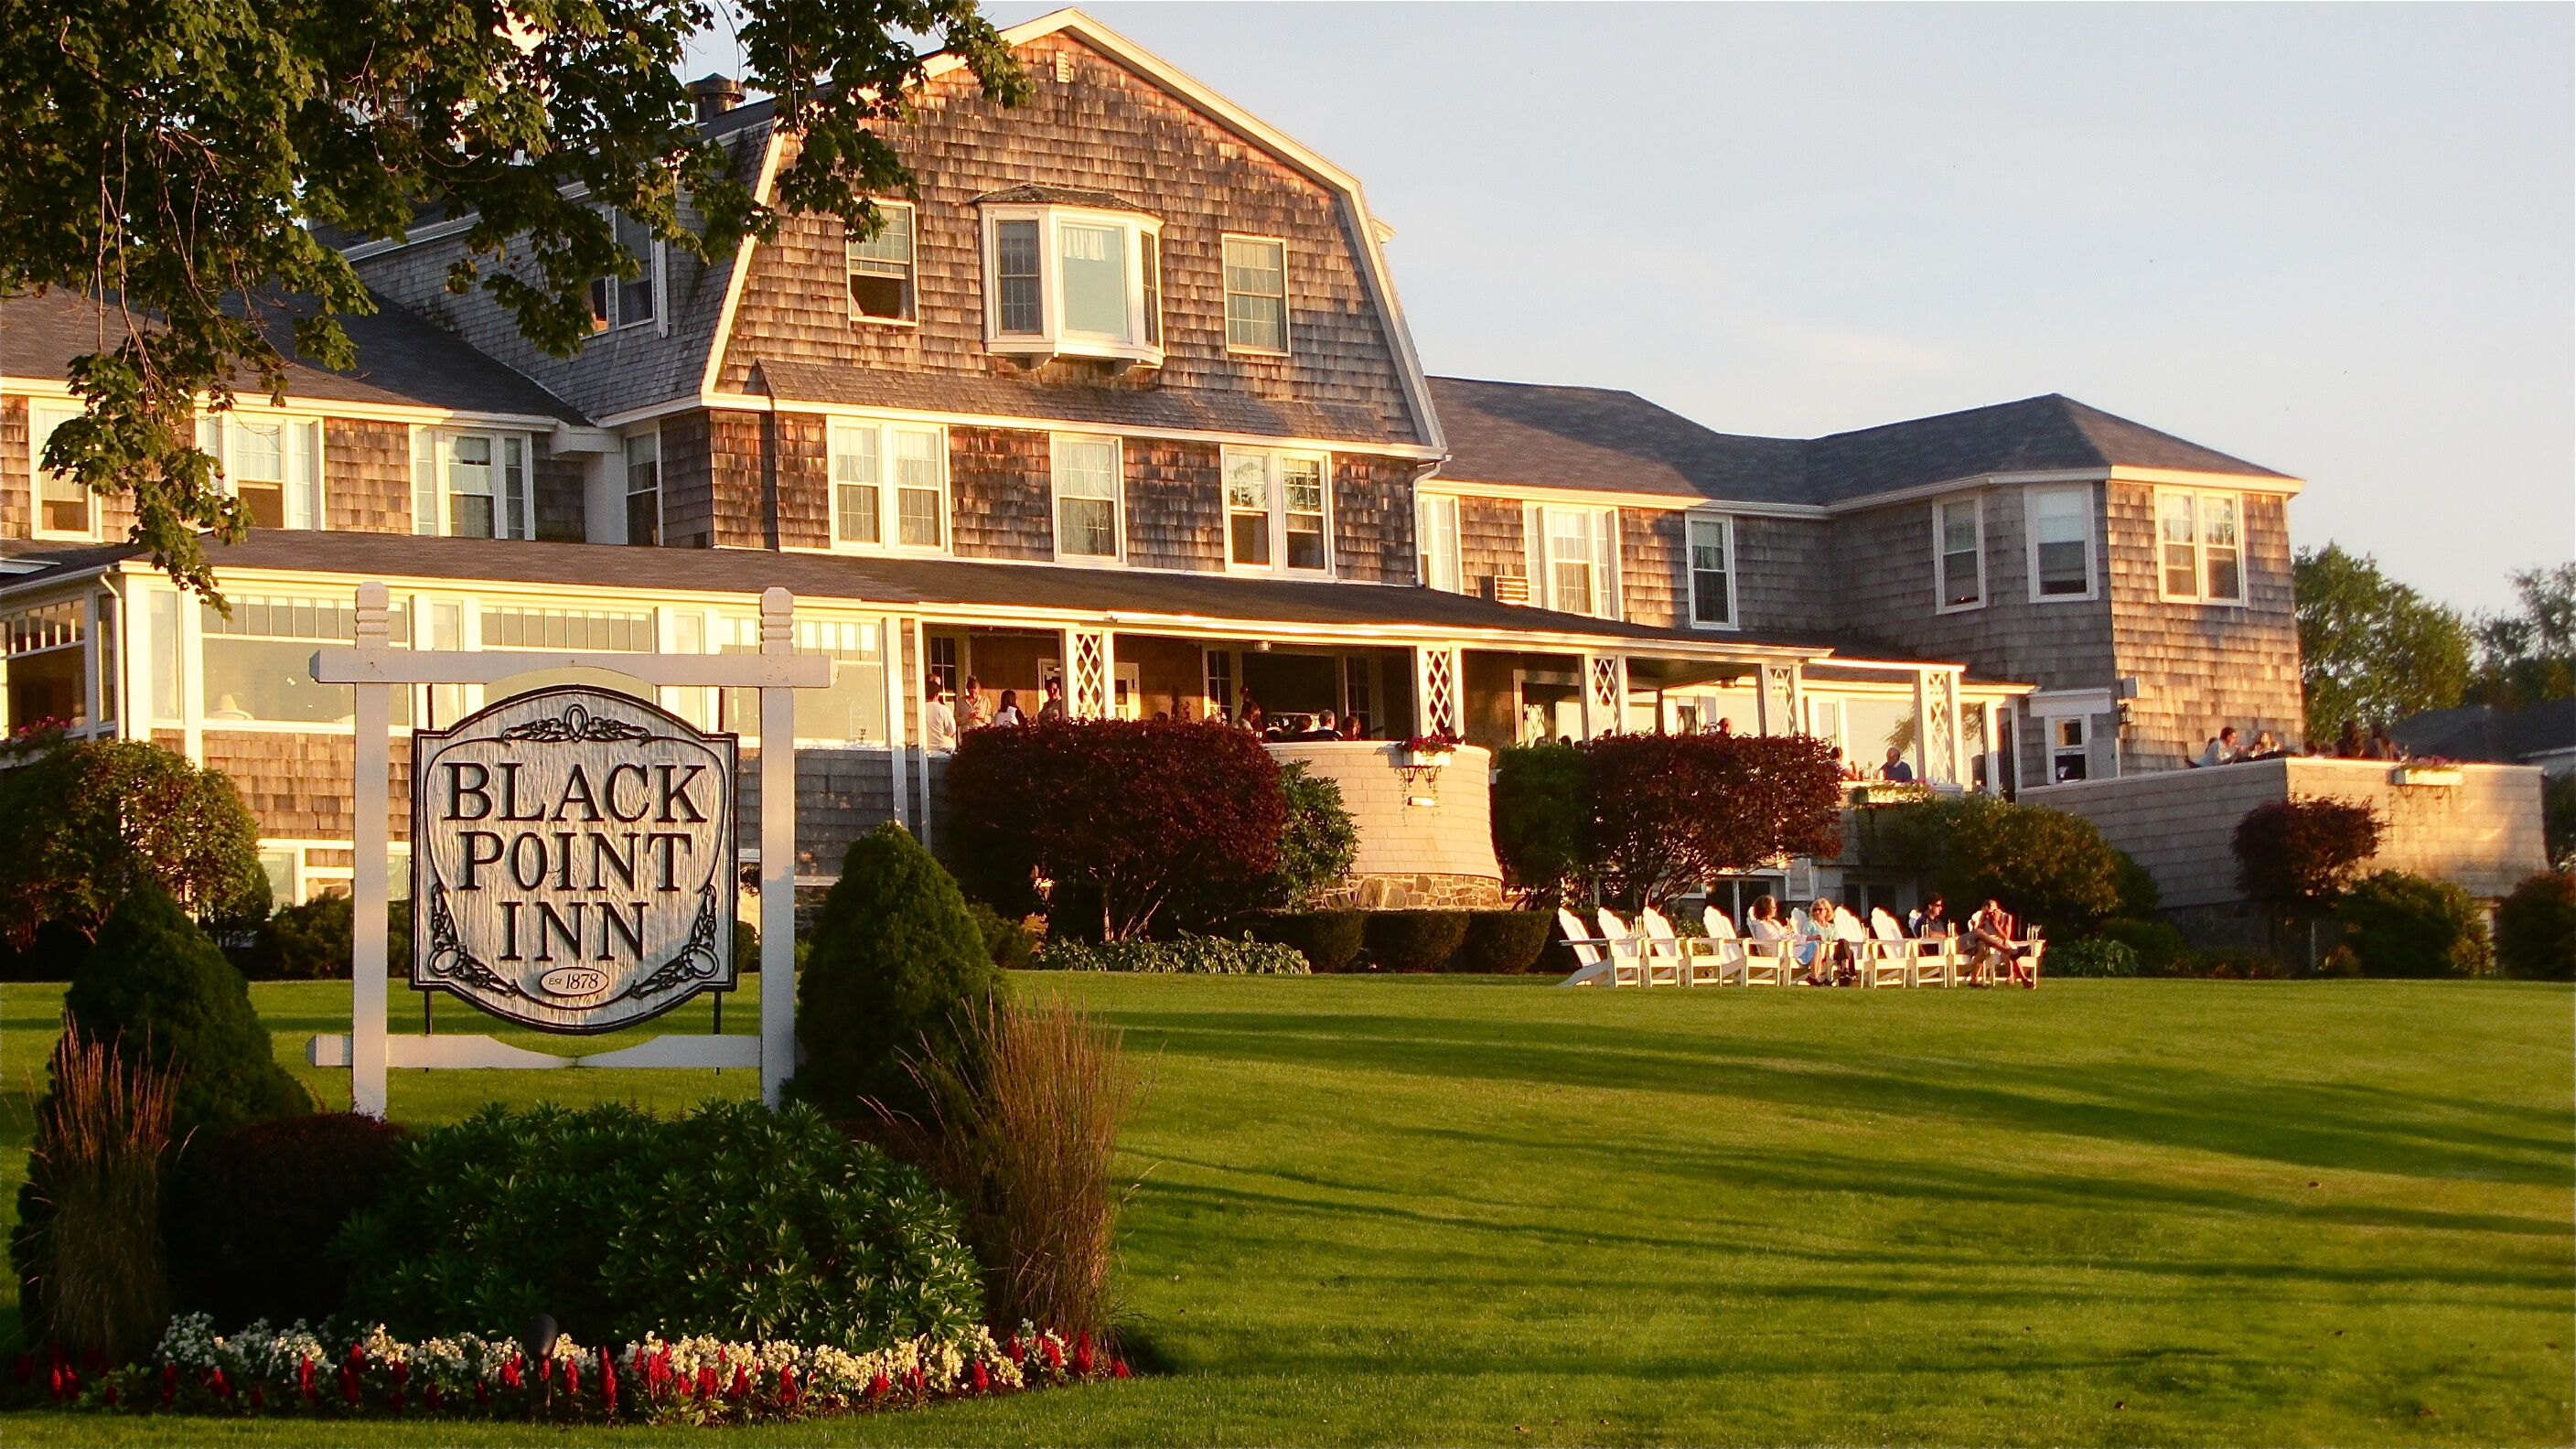 Wedding reception venues in saco me the knot black point inn junglespirit Choice Image